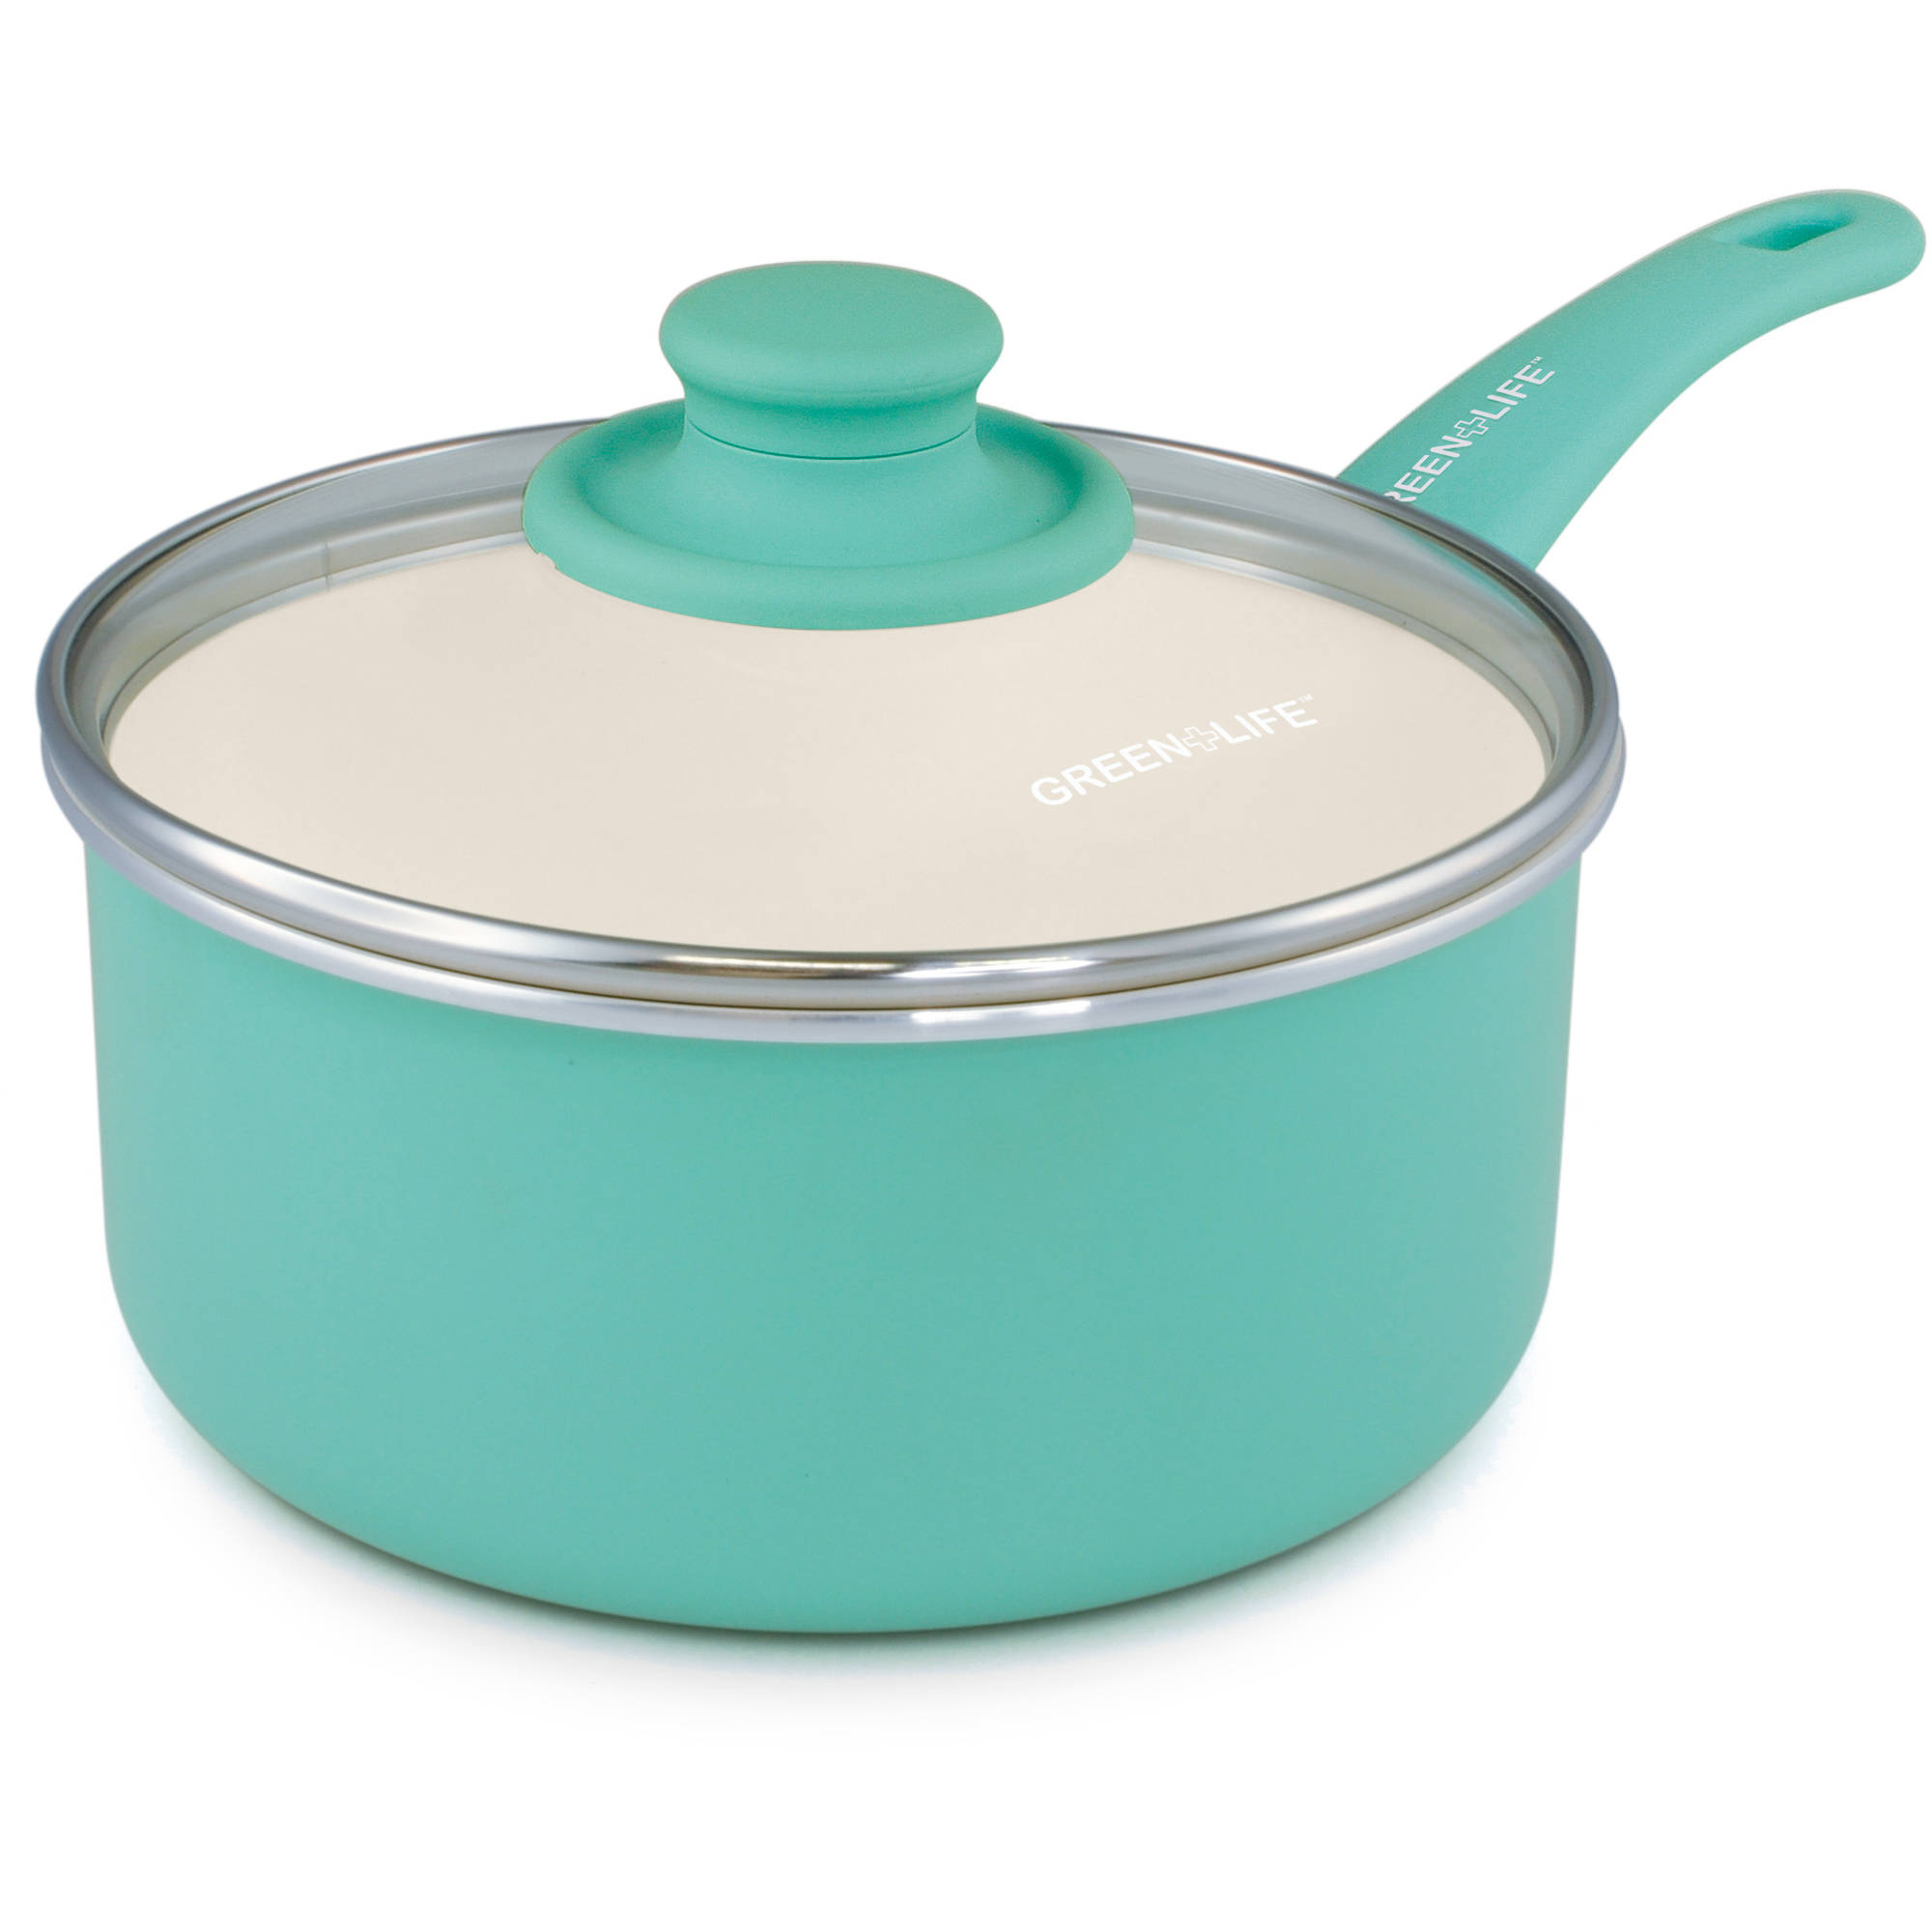 1 Quart Ceramic Saucepan With Lid